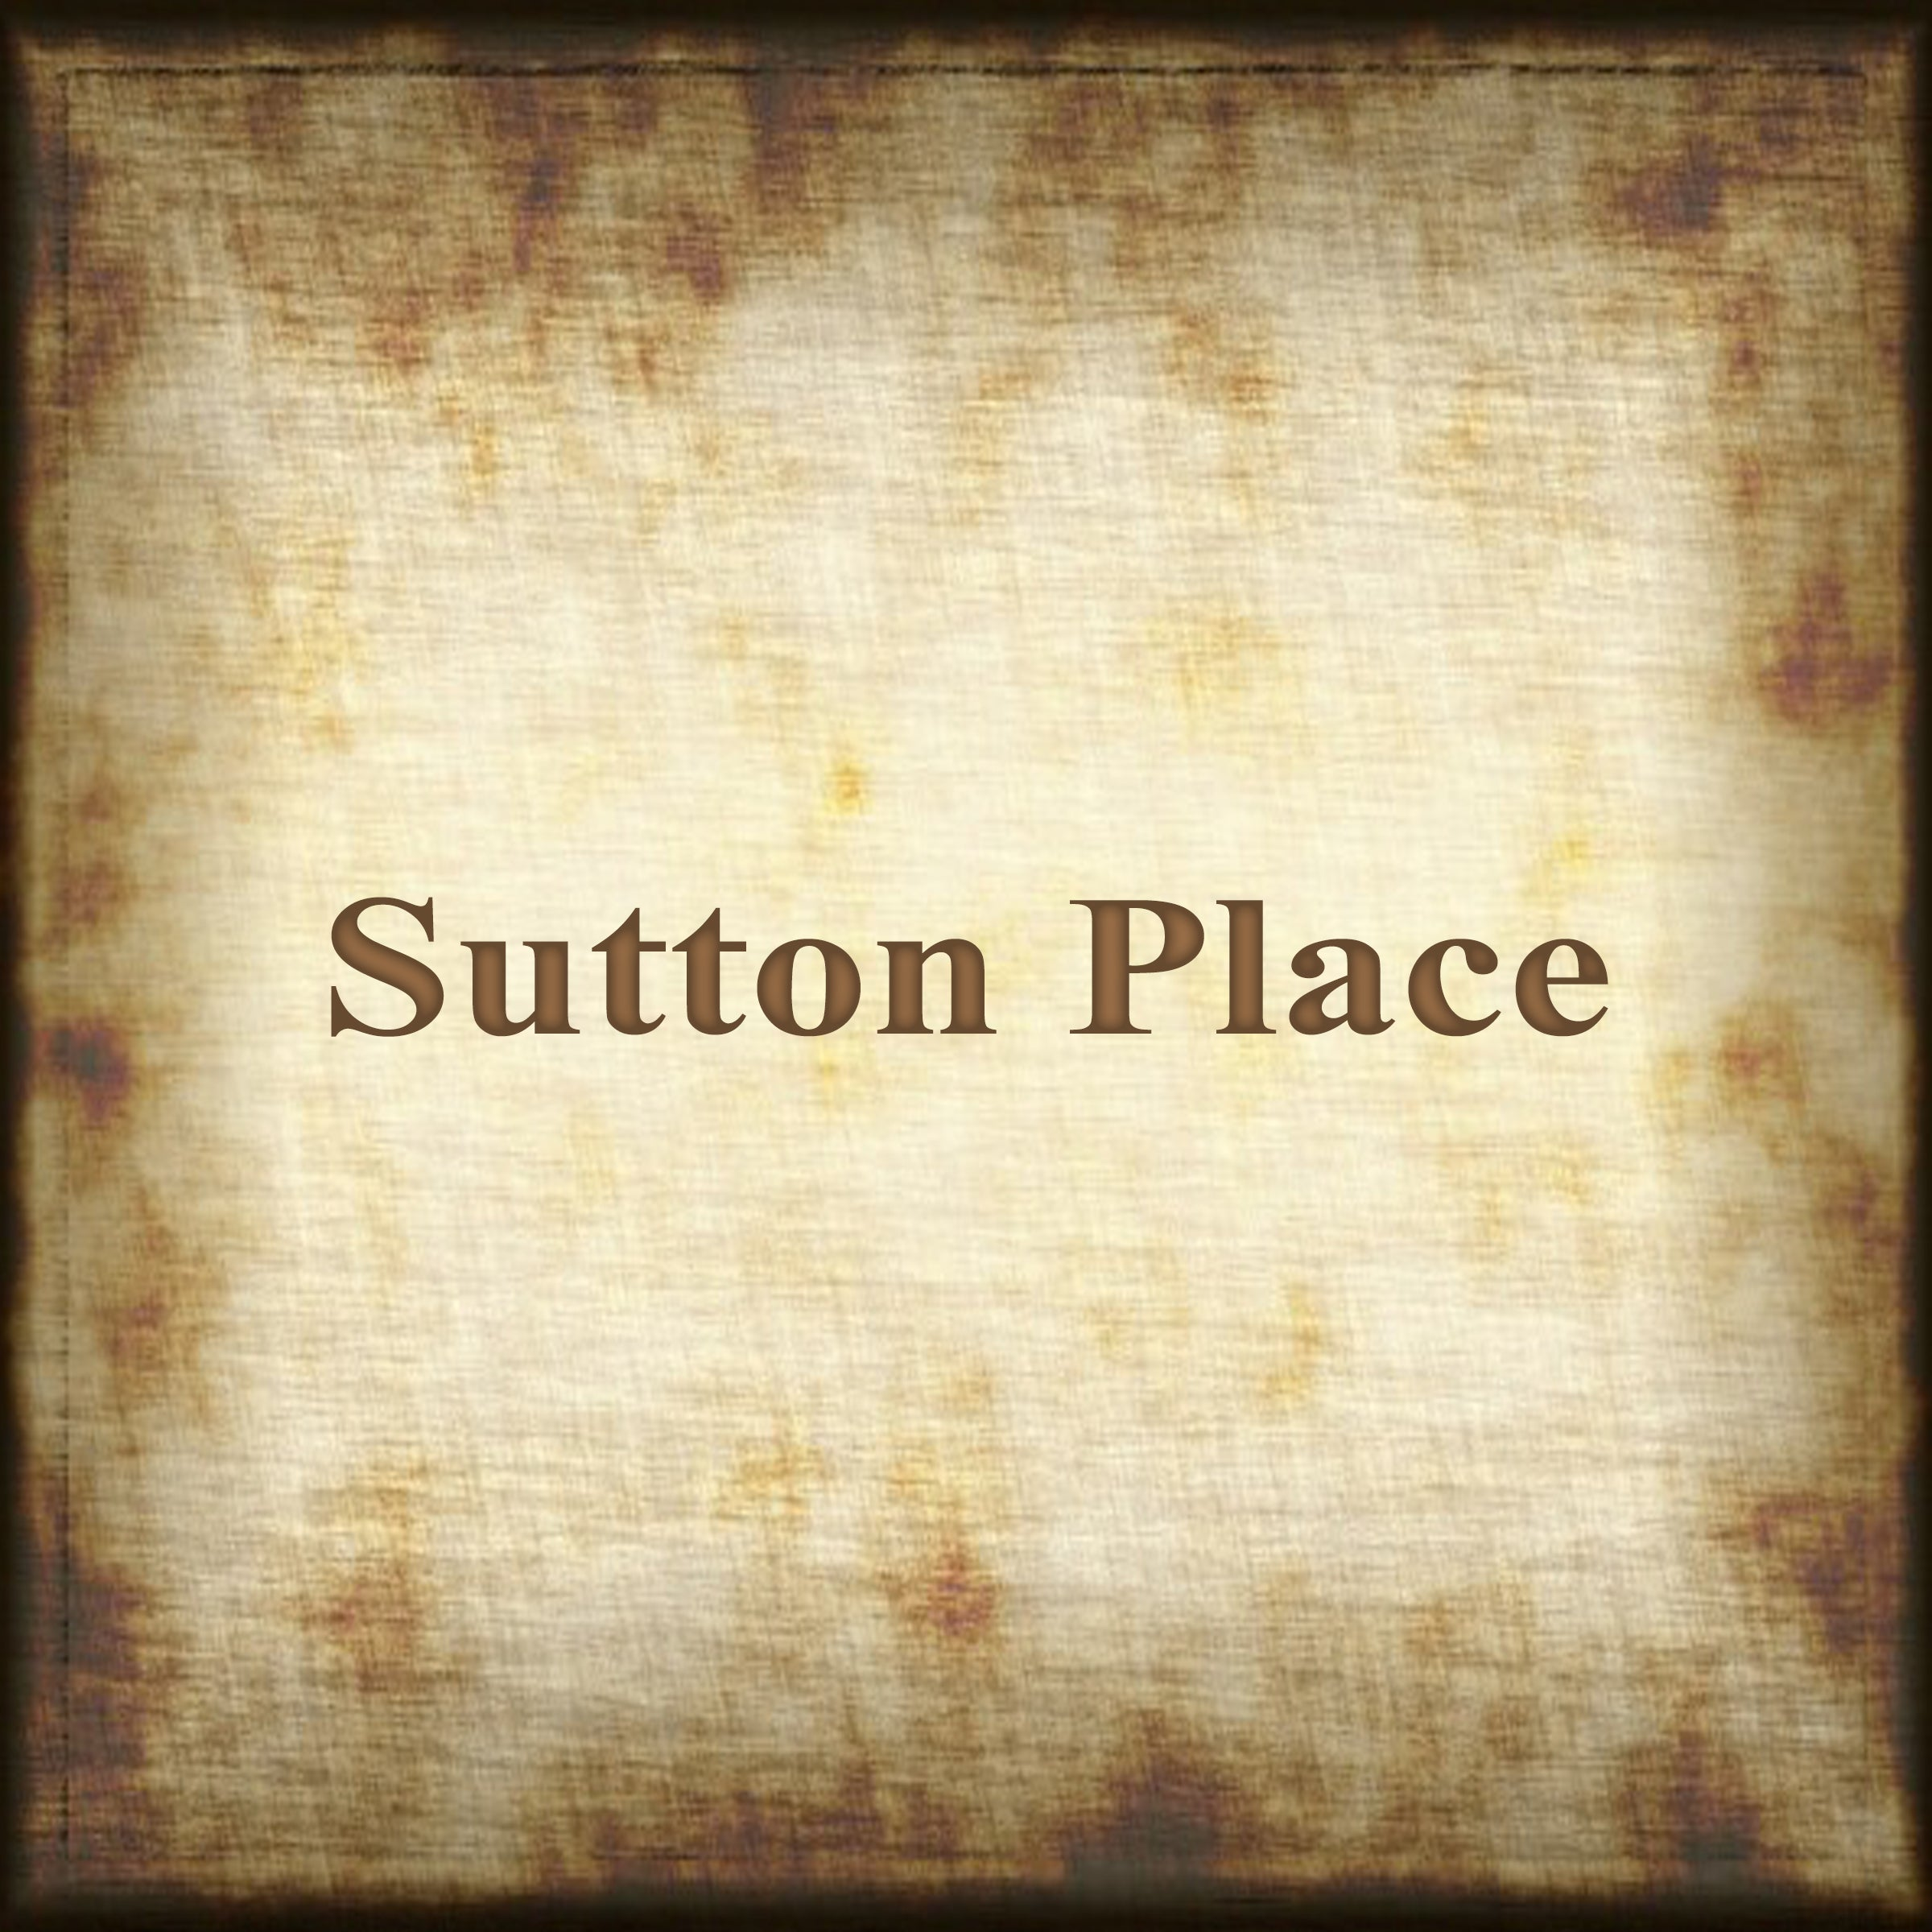 Sutton Place by Bond no 9 (M)